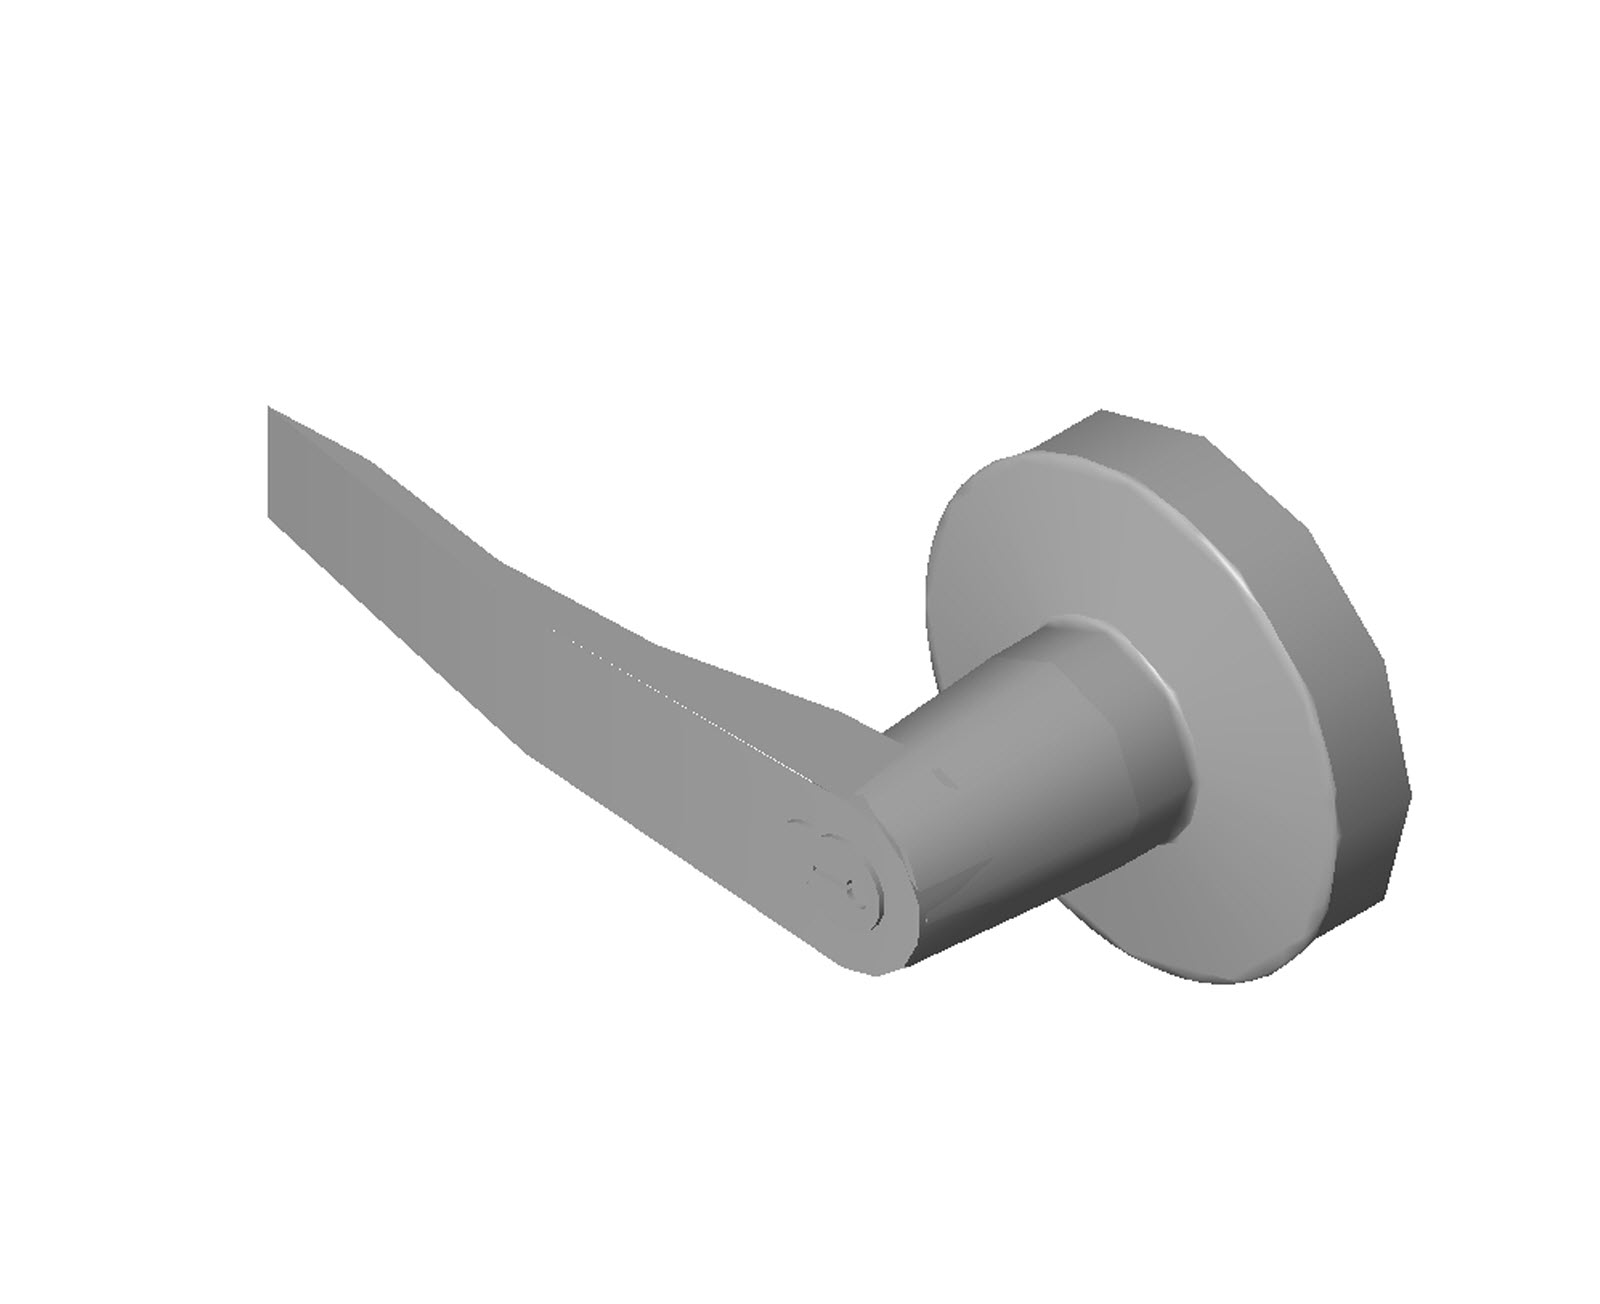 Doors and Hardware Door Hardware Exit Devices PDQ - 6200 Series - 629 - LMSH IC  sc 1 st  BIM Objects / Families & BIM Objects / Families